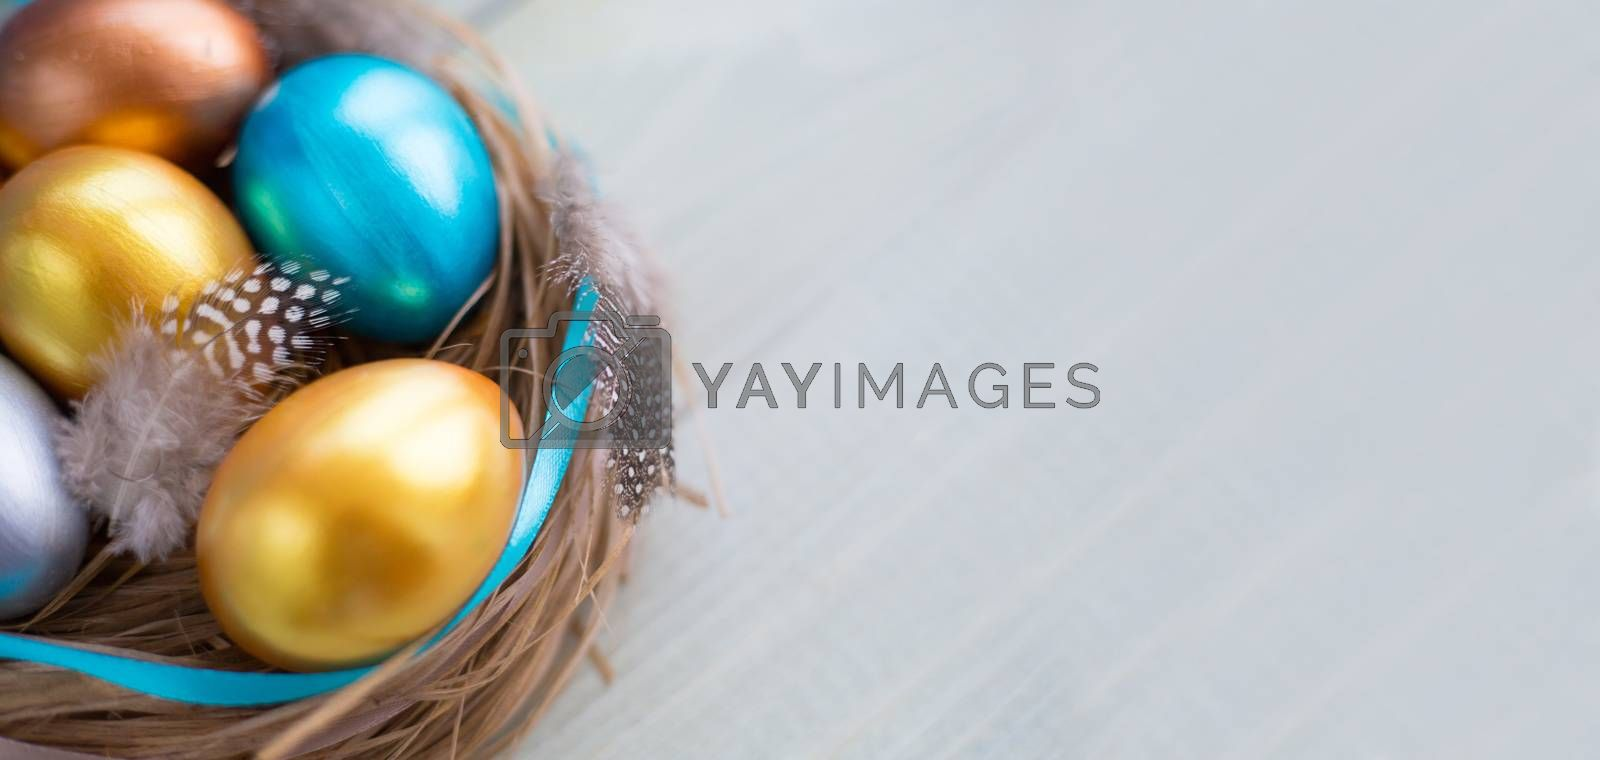 Beautiful Happy Easter holiday greeting banner with easter nest with colored eggs and decorated with ribbons and feathers over light wooden background with copy space for text